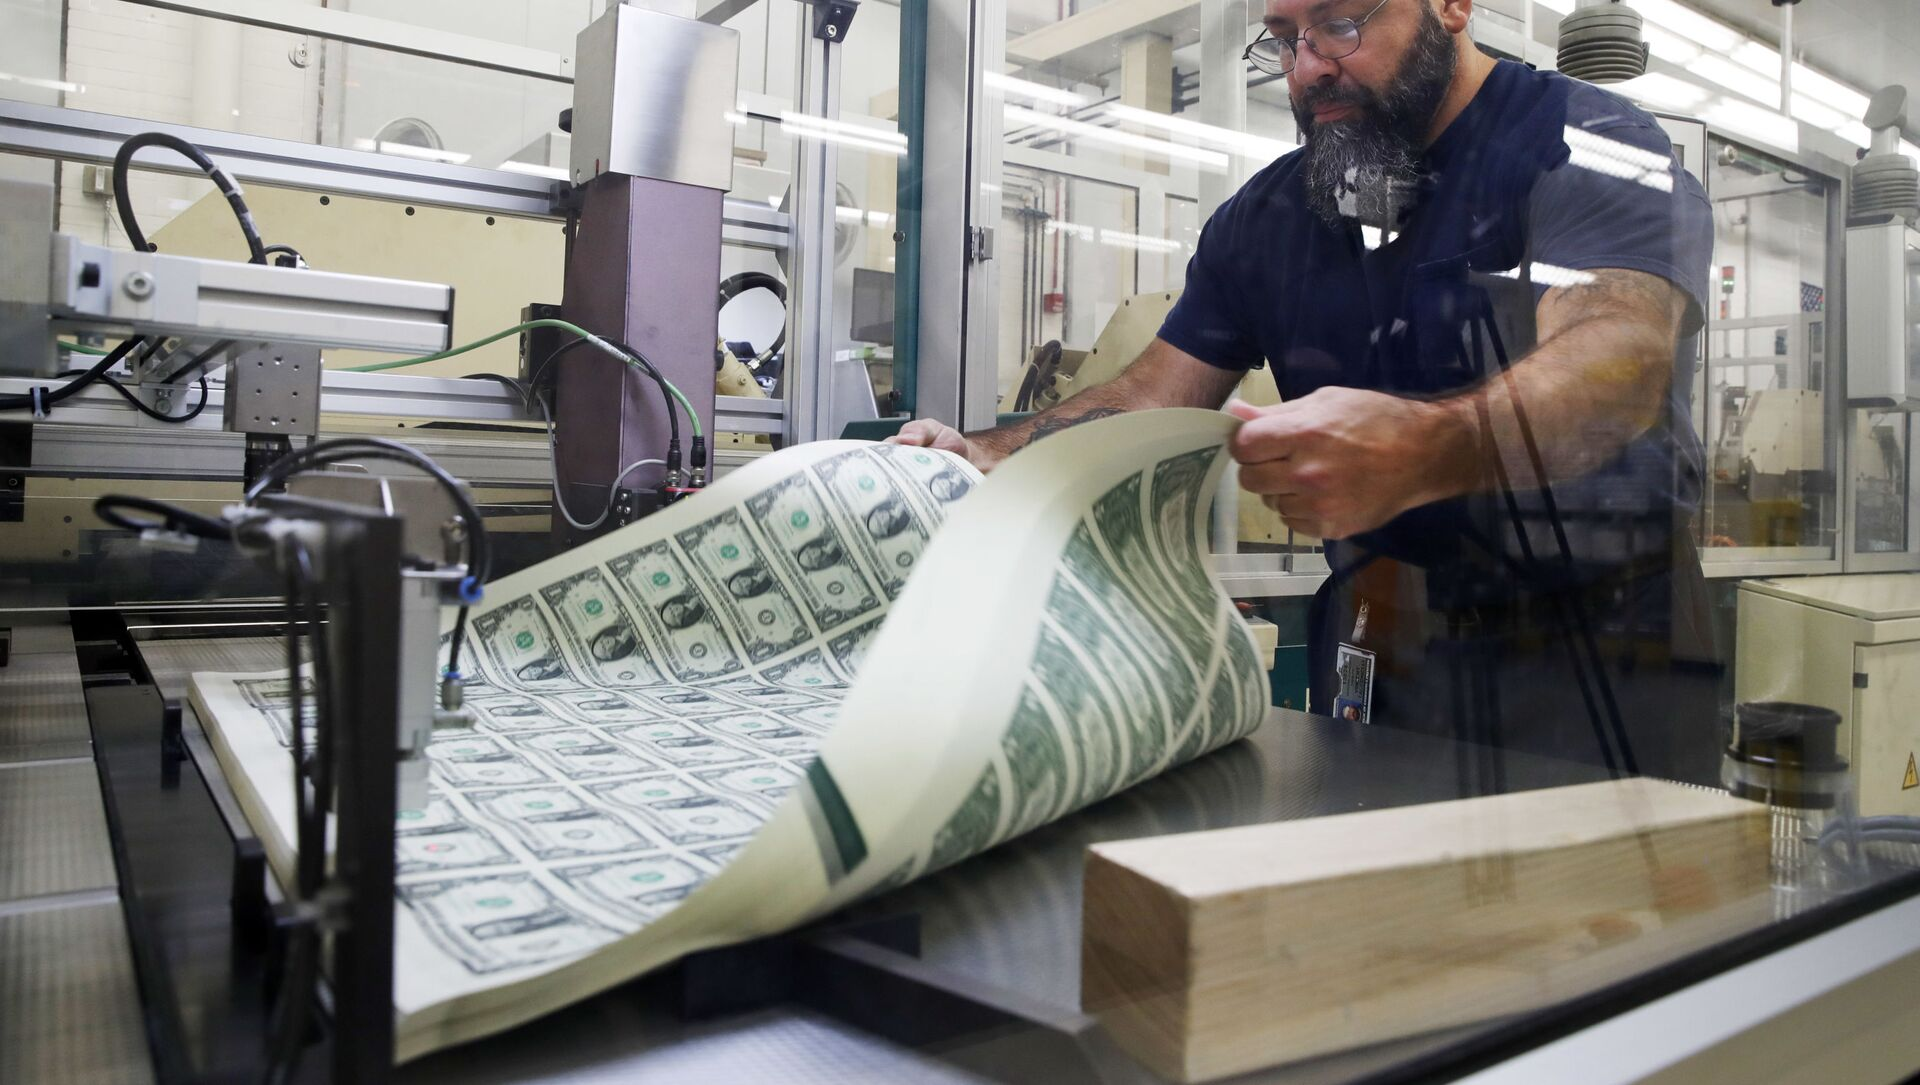 FILE- In this Nov. 15, 2017, file photo, a worker aerates printed sheets of dollar bills at the Bureau of Engraving and Printing in Washington.  - Sputnik International, 1920, 02.08.2021